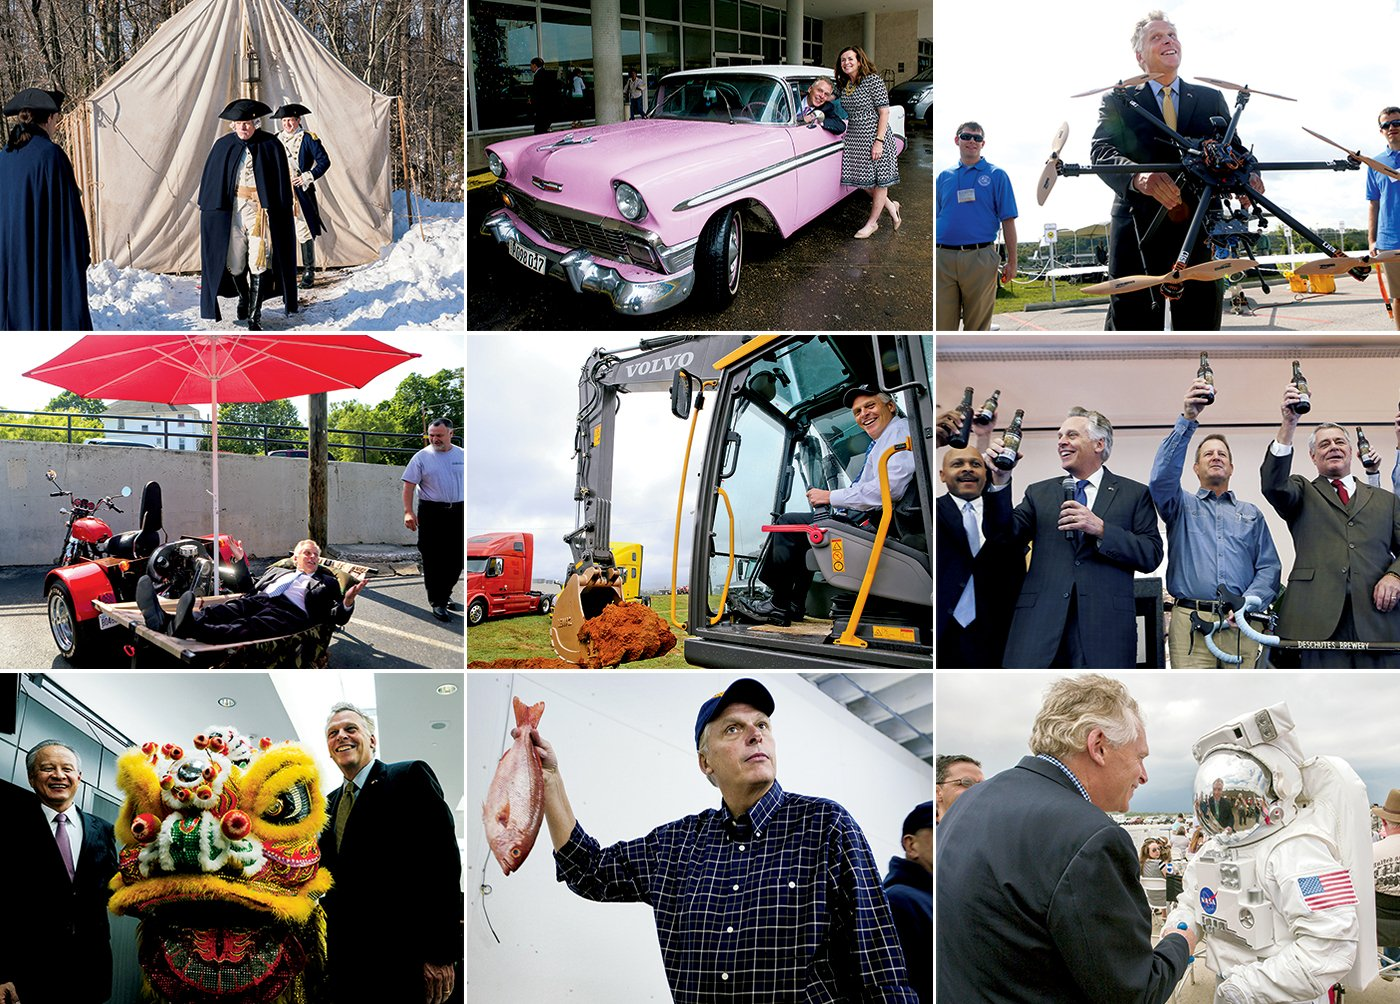 McAuliffe will show up anywhere to promote his state. Left to right, from top: shooting the AMC spy show Turn; touring Havana; testing drones at Virginia Tech; promoting crowd-funding and small businesses from a motorized hammock; breaking ground at a Volvo plant in Dublin, Virginia; announcing the Deschutes Brewery's East Coast operations in Roanoke; celebrating the start of Air China flights between Beijing and Dulles; campaigning with a red snapper in Norfolk; touring the NASA Langley Research Center in Hampton. Photographs of McAuliffe in <em>Turn</em> by Antony Platt/AMC; in Havana by Craig Carper/WCVE Richmond Public Radio/AP; testing drones by Matt Gentry/Roanoke Times/AP; on motorized hammock and breaking ground by Stephanie Klein-Davis/Roanoke Times/AP; at brewery by Heather Rousseau/Roanoke Times/AP; celebrating Air China flights by Bao Dandan/Xinhua/Alamy; with red snapper by Thé N. Pham/Virginian-Pilot/AP; touring NASA courtesy of NASA Photo/Alamy Stock Photo.